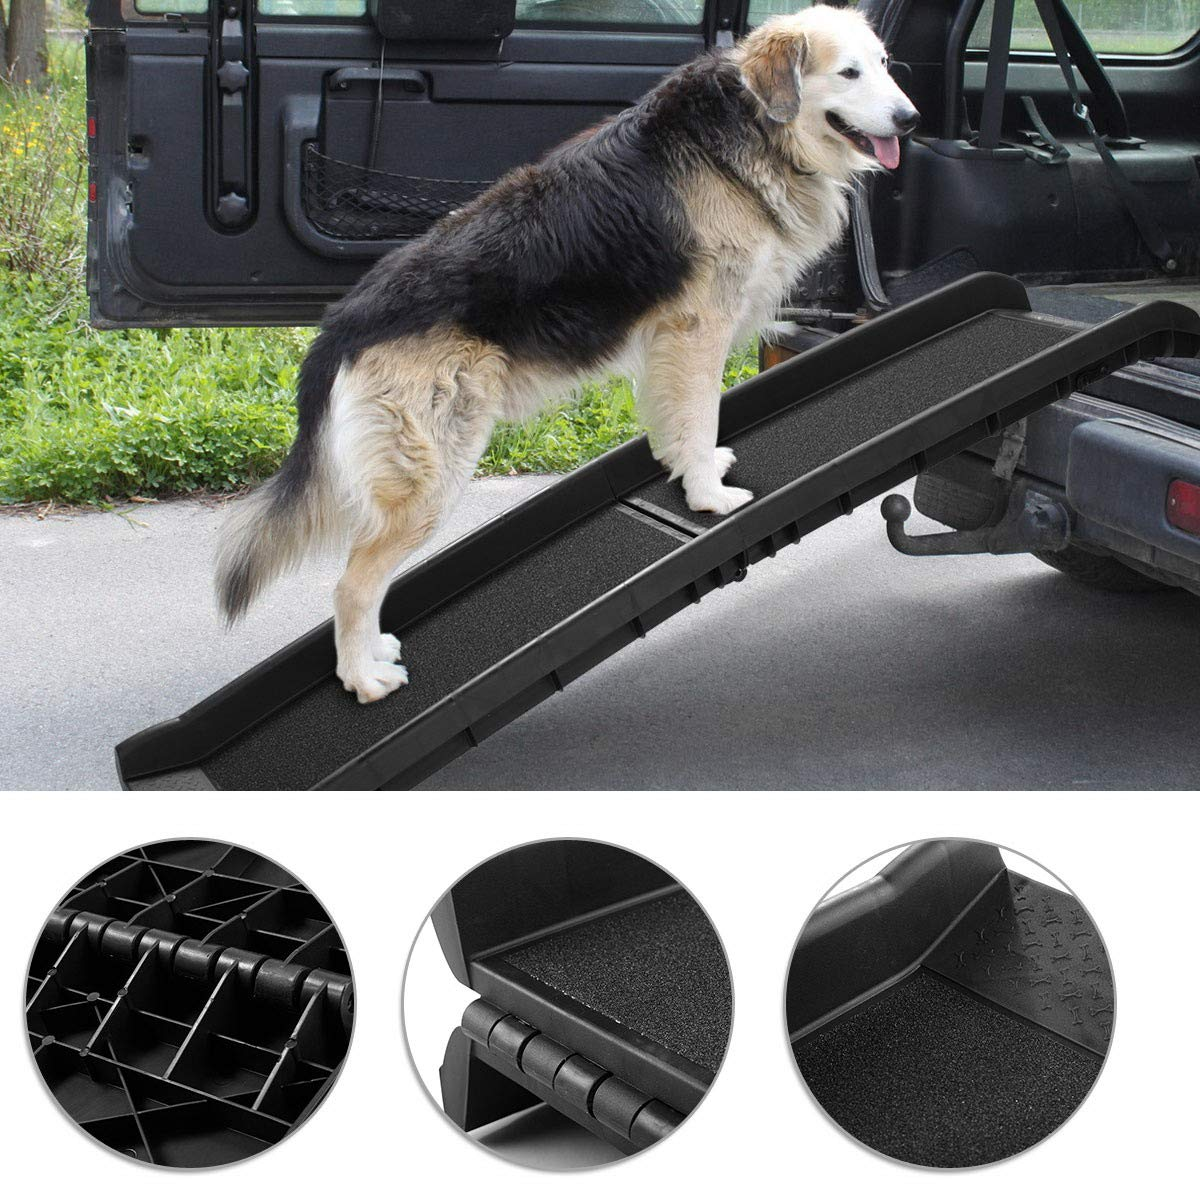 Tobbi 62'' Bi-fold Portable Dog Ramp for Large Pet Folding Trunk Back Seat Ladder Step Car SUV 62'' by Tobbi